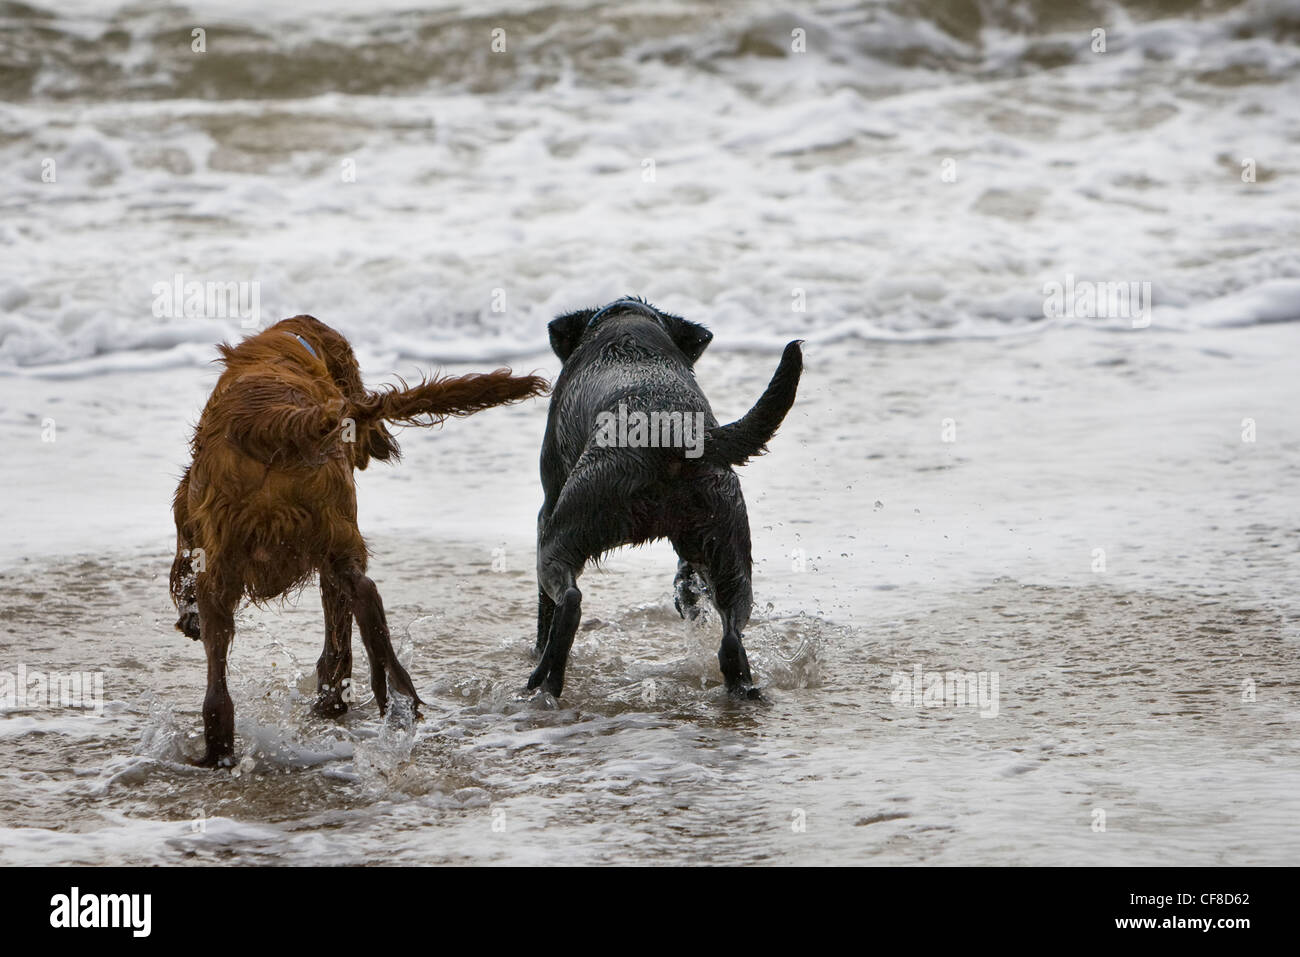 Two dogs paddling in surf on beach, Dorset, England Stock Photo